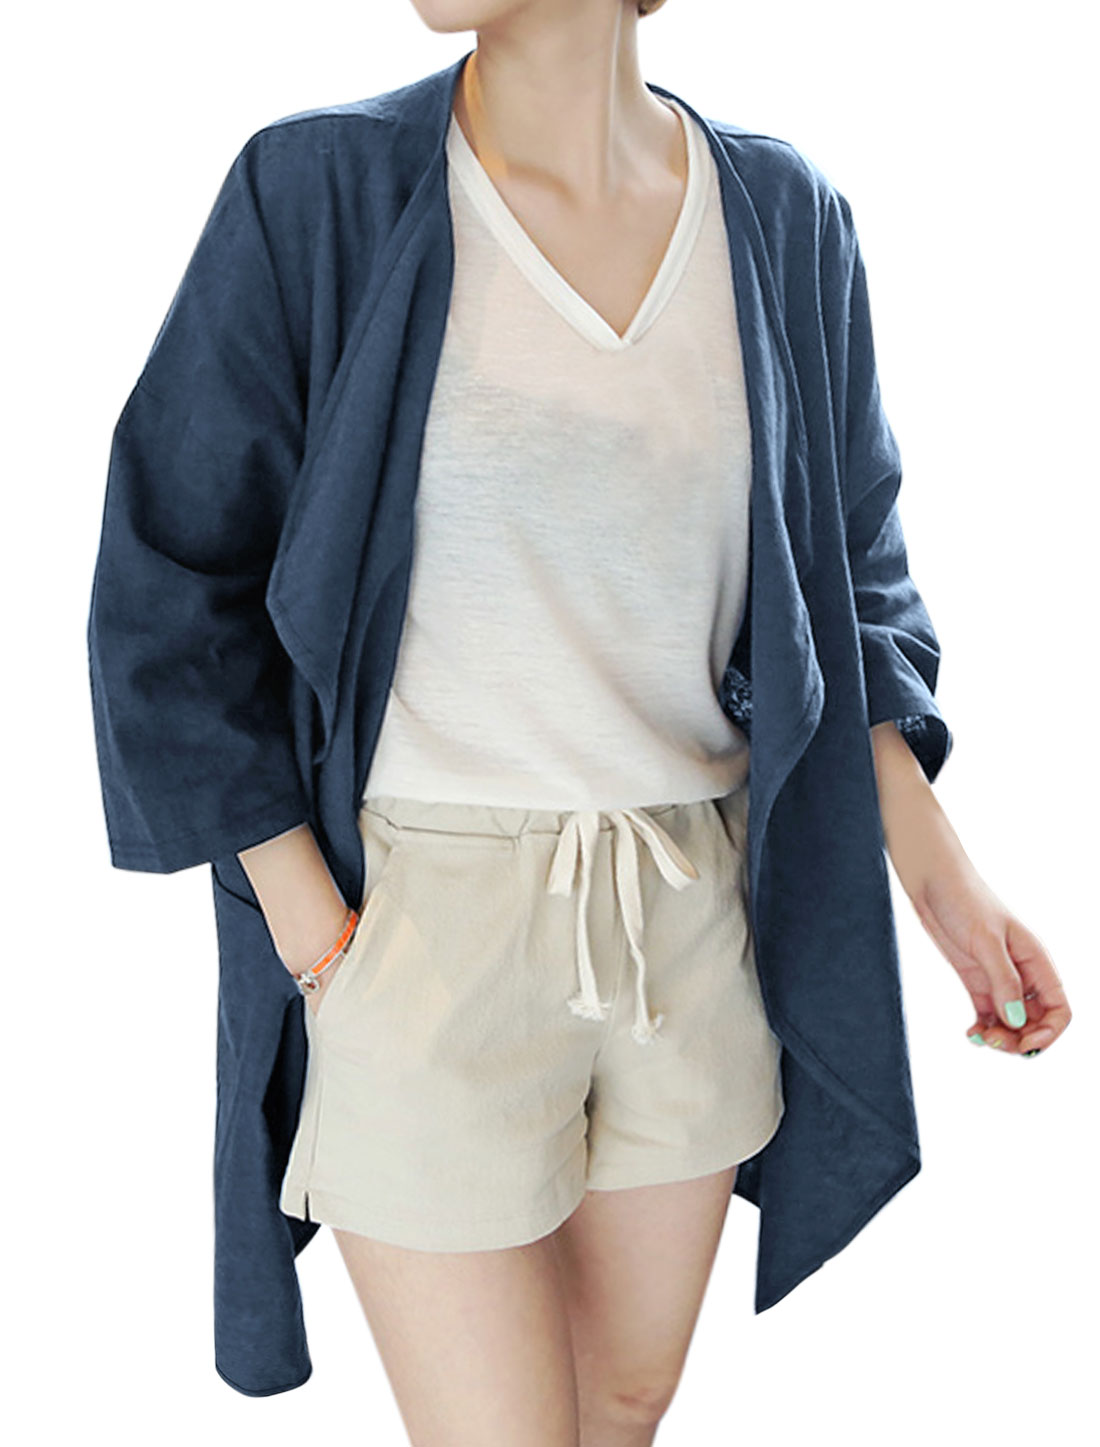 Women 3/4 Sleeves Turn Down Collar Two Pockets Tunic Jacket Blue XS